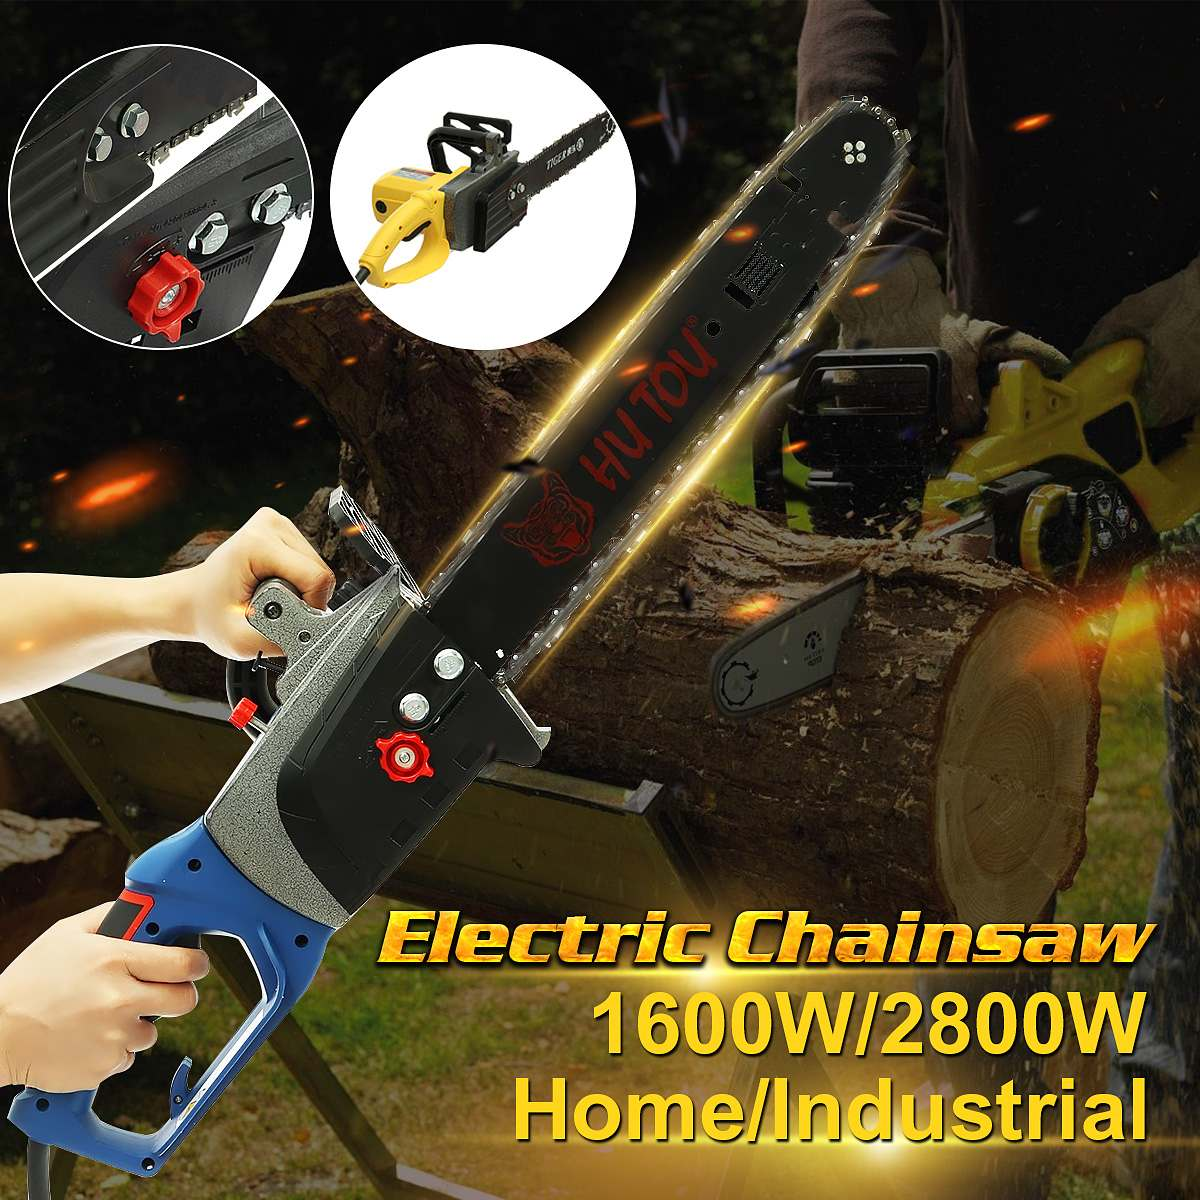 220V 2600w/4800w Home/Industrial Electric Chain Saw Wood Saw Chainsaw 1200r/min Woodworking Chainsaw220V 2600w/4800w Home/Industrial Electric Chain Saw Wood Saw Chainsaw 1200r/min Woodworking Chainsaw